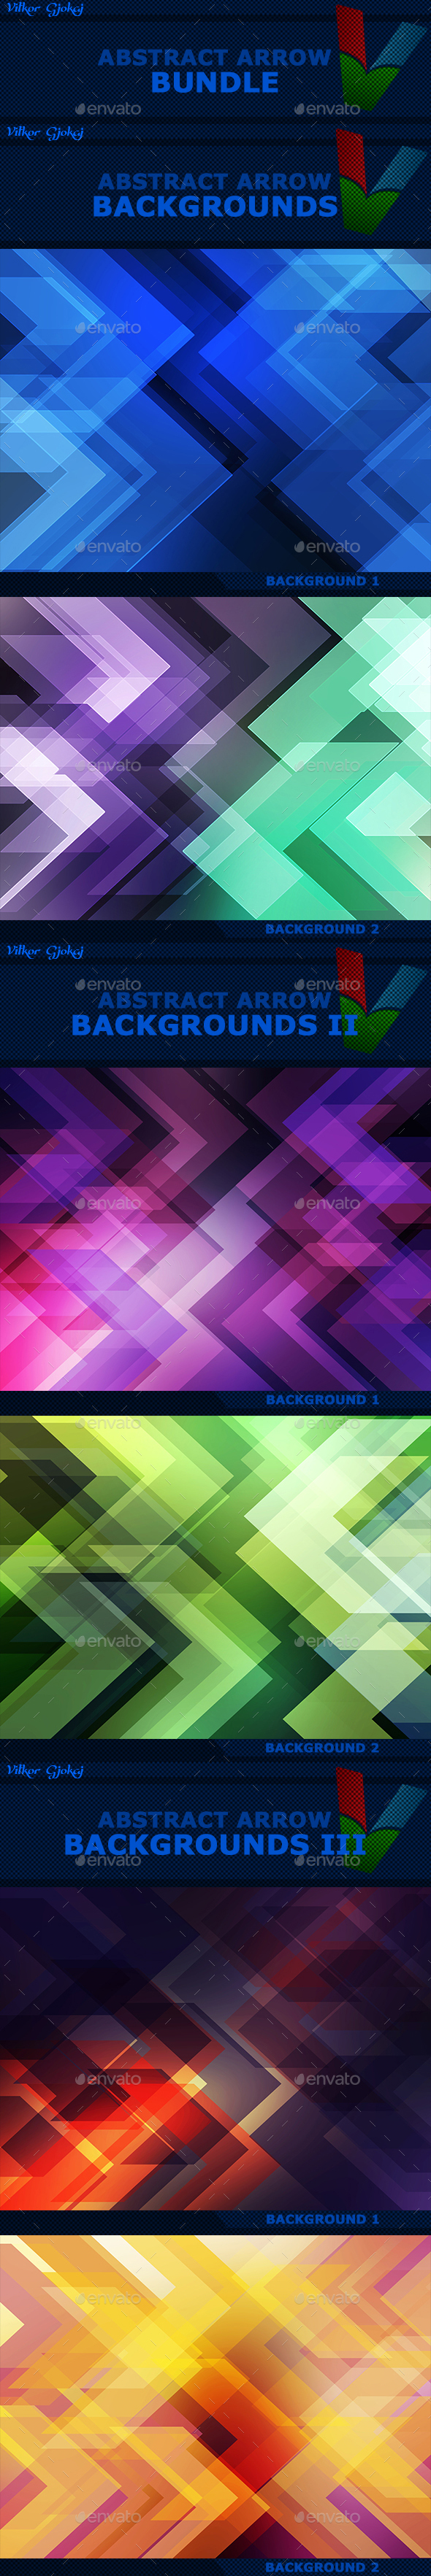 15 Abstract Arrow Backgrounds BUNDLE - Abstract Backgrounds